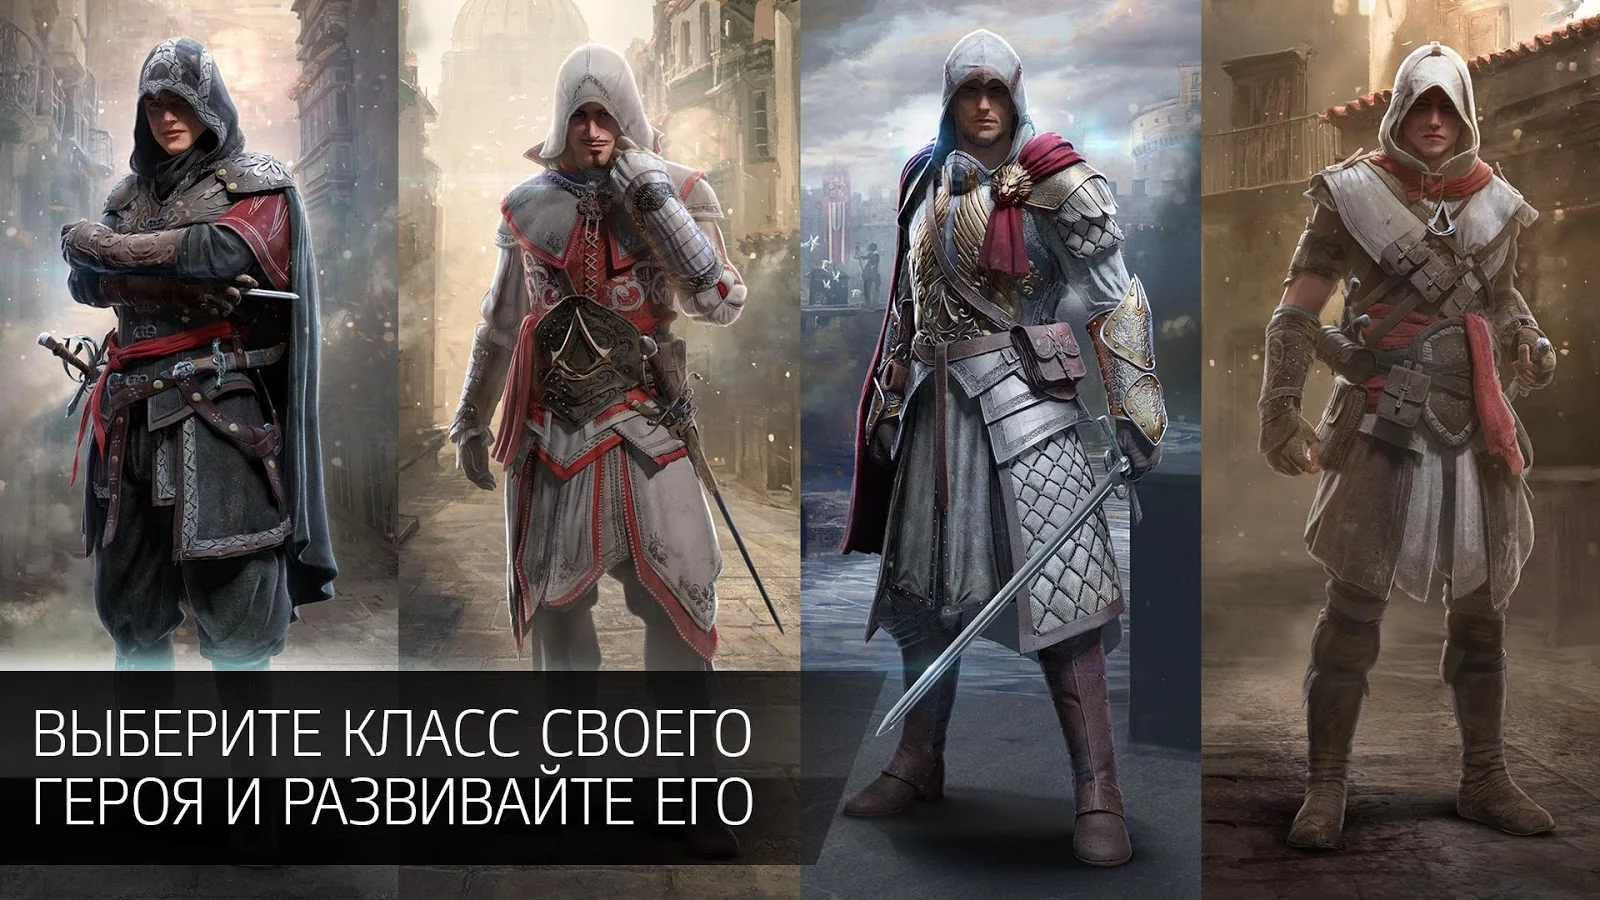 Assassin's creed identity apk+data 2. 8. 2 (paid, official) for.